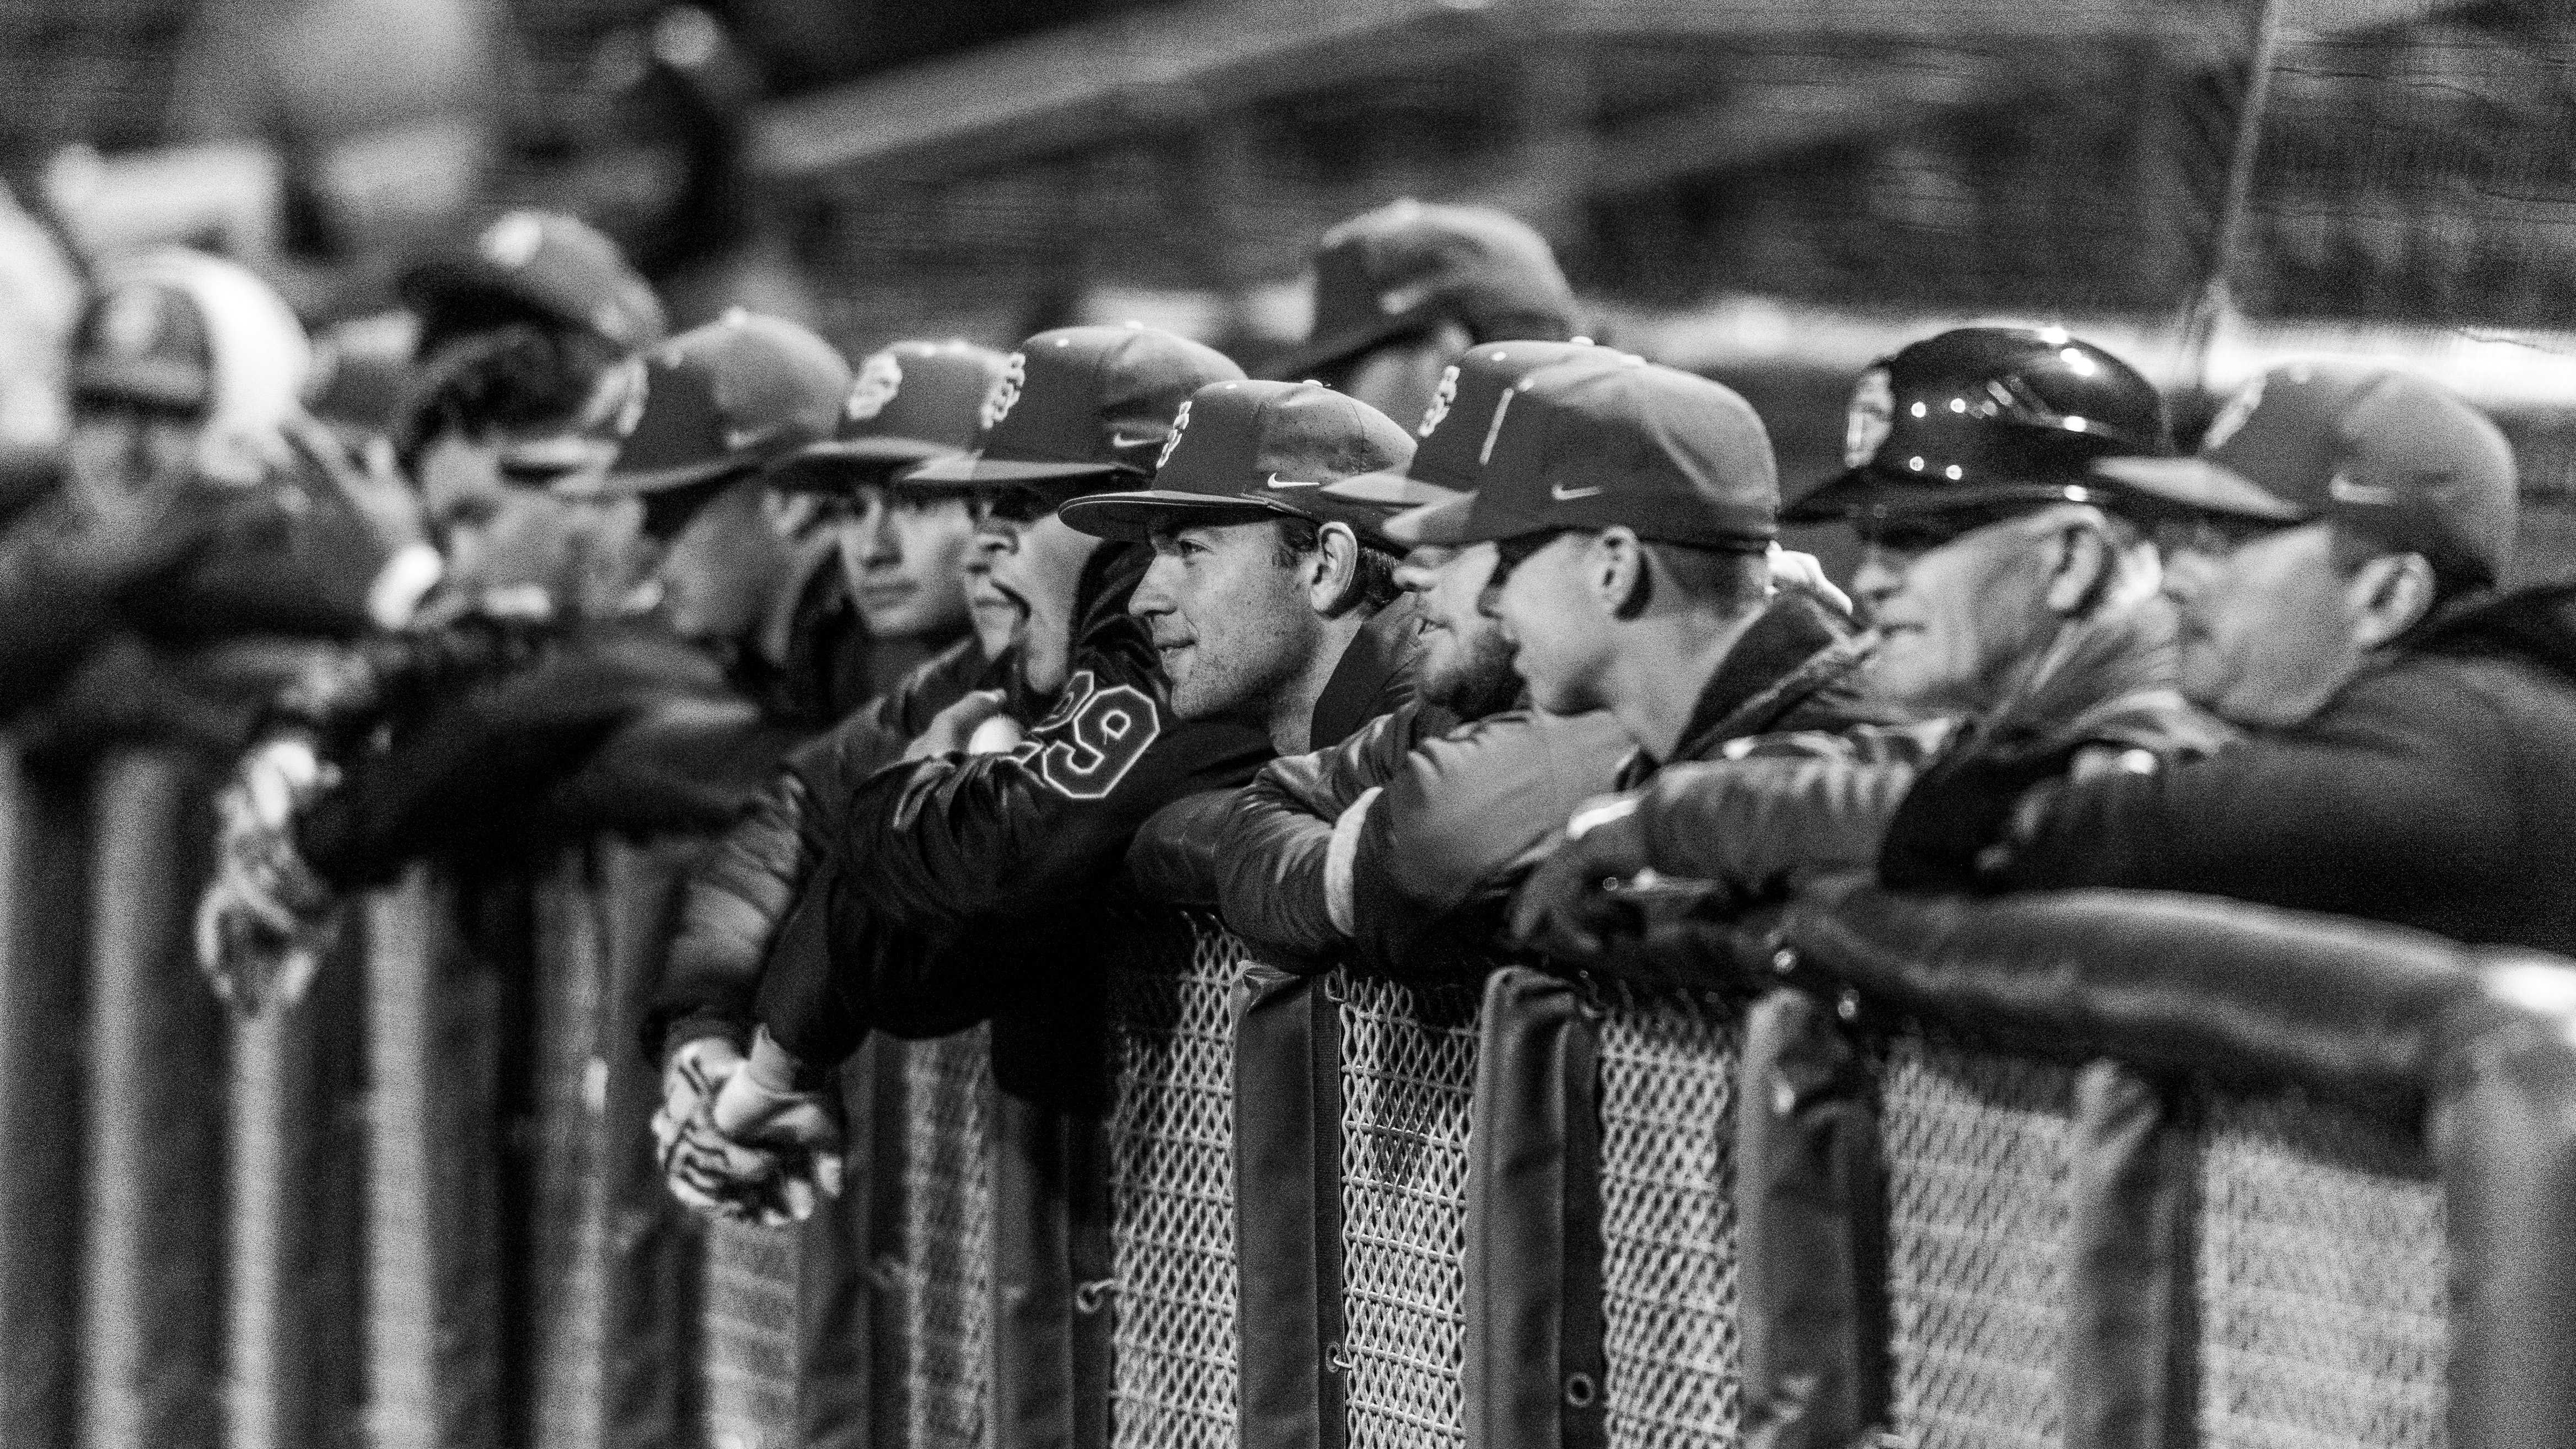 The USC dugout during an NCAA Baseball game at the Smith's Ballpark in Salt Lake City, Utah on Thursday, April 11, 2019. (Photo by Kiffer Creveling | The Daily Utah Chronicle)